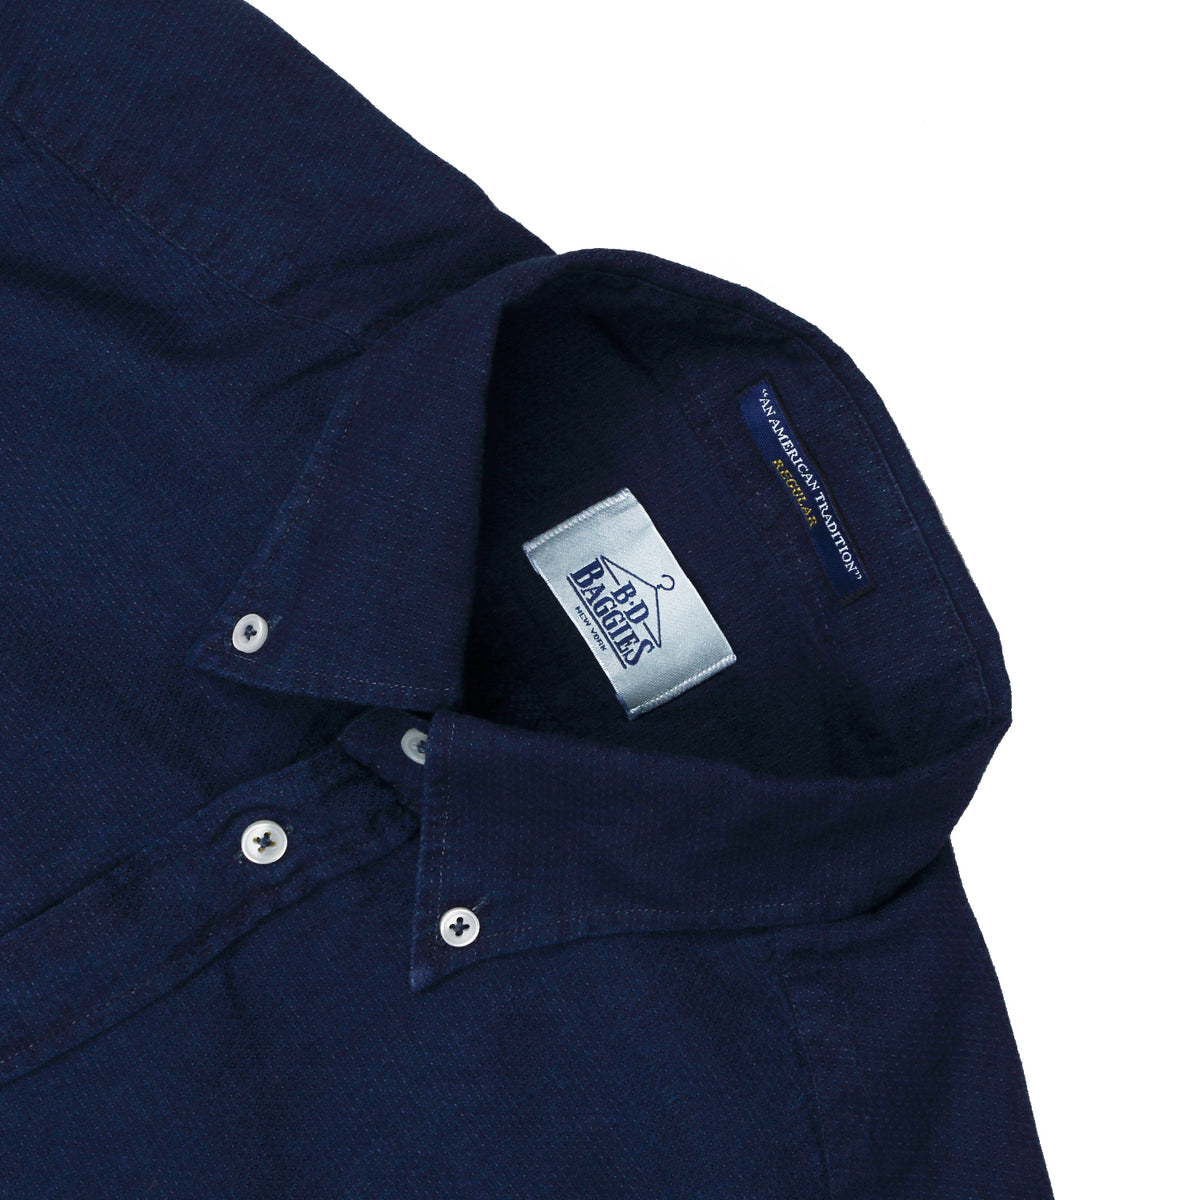 B.D. BAGGIES - BRADFORD BUTTON DOWN - NAVY TEXTURE